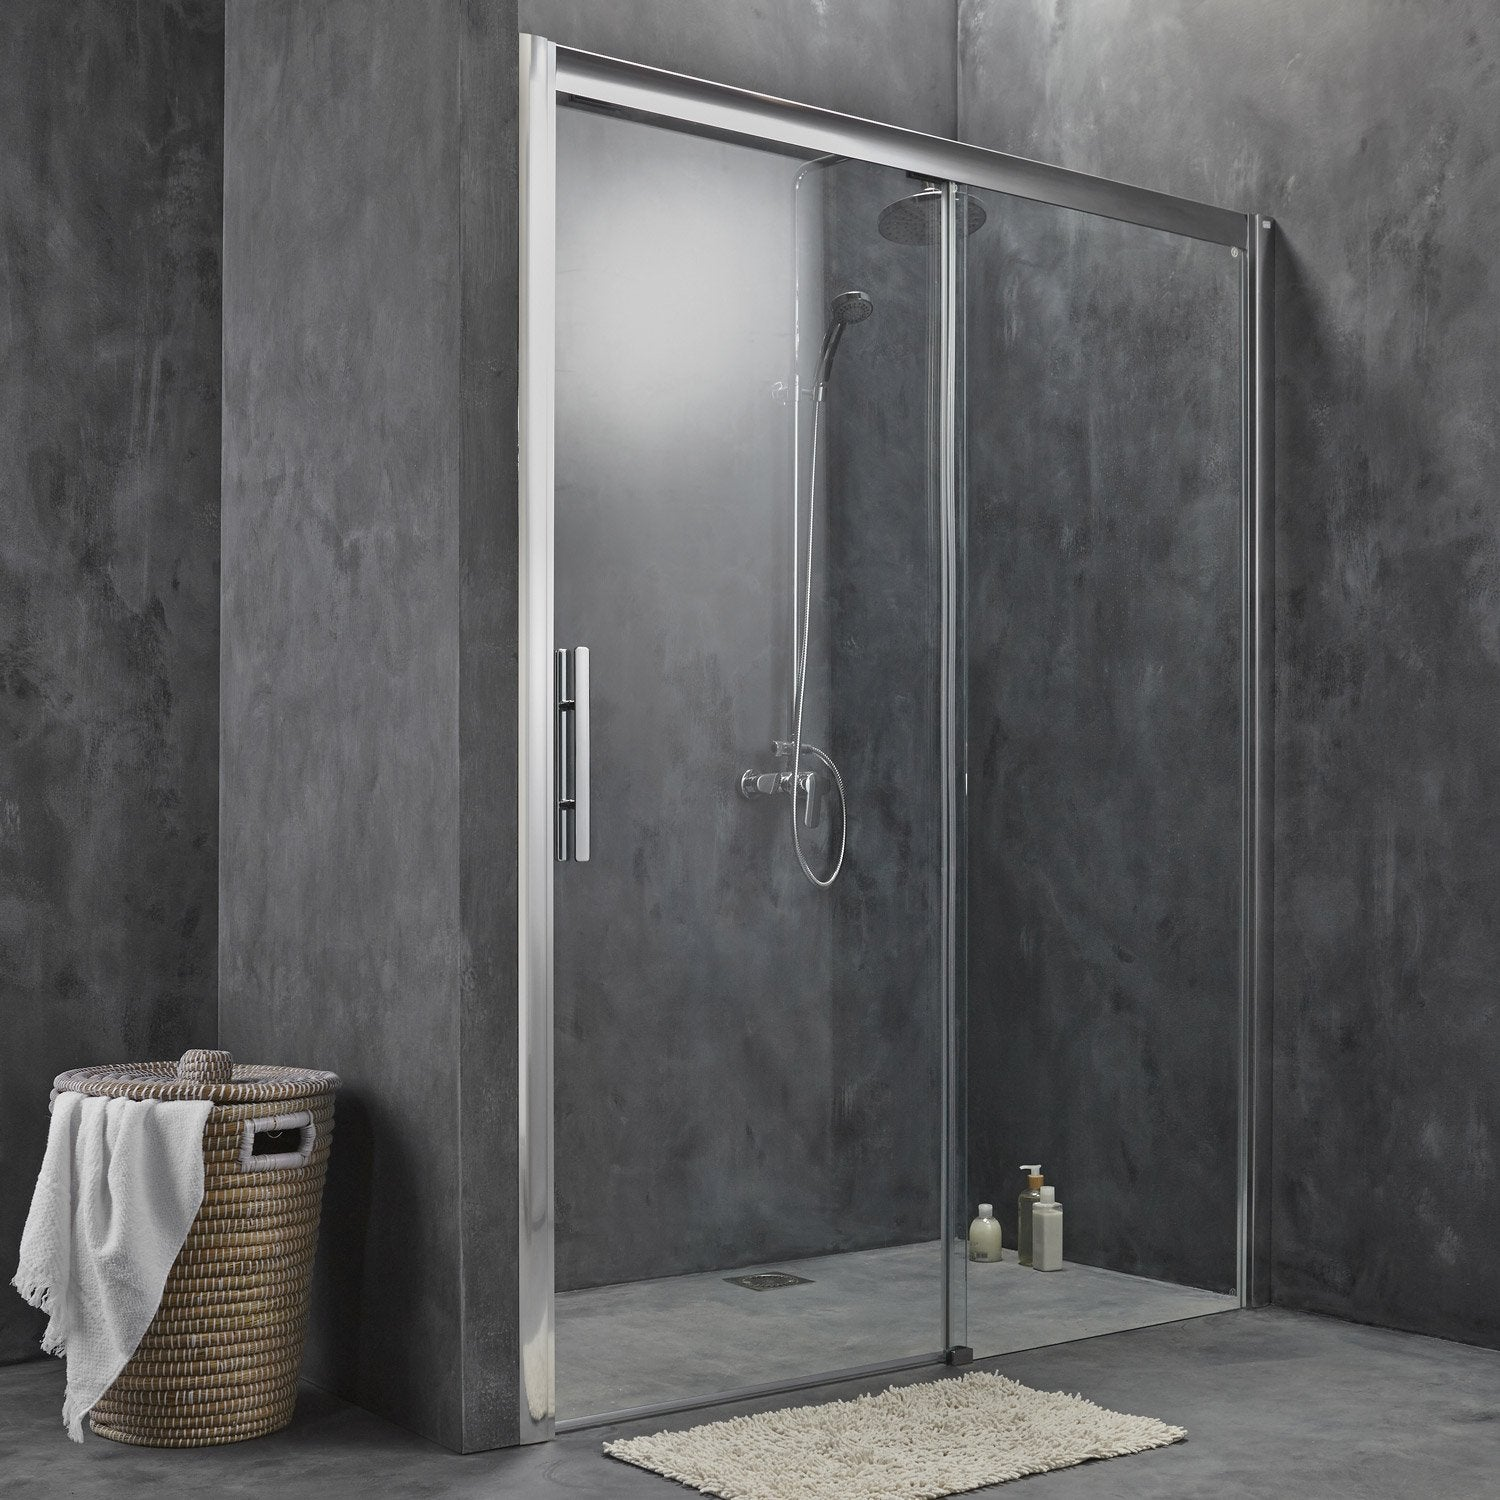 Porte de douche coulissante 170 cm transparent adena - Porte coulissante encastrable leroy merlin ...